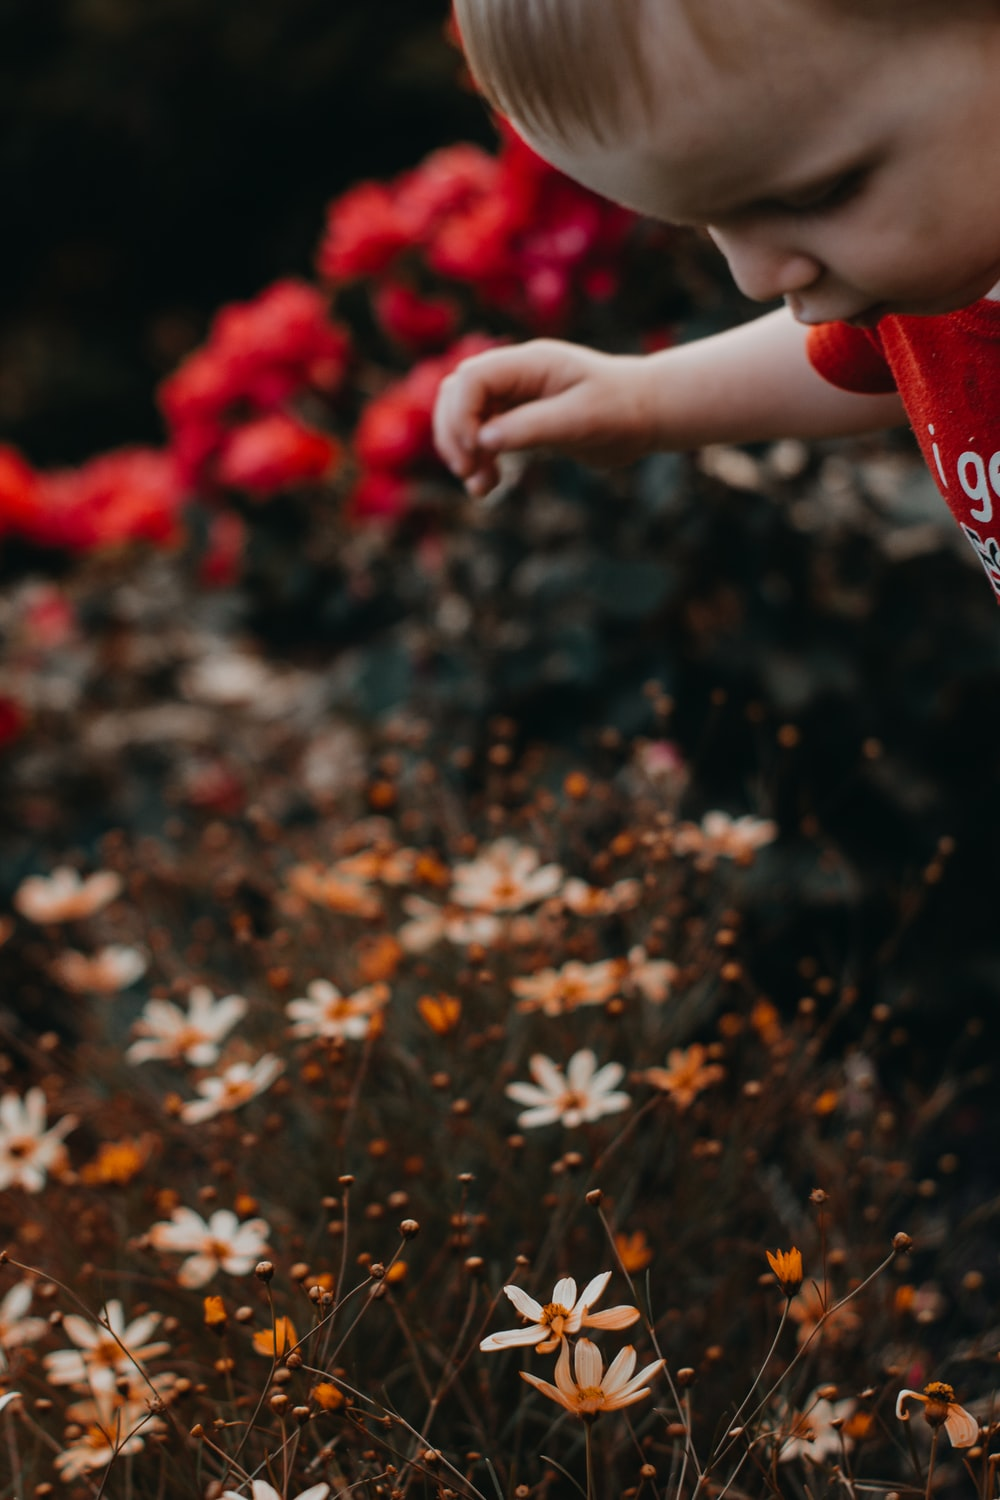 boy's red and white t-shirt